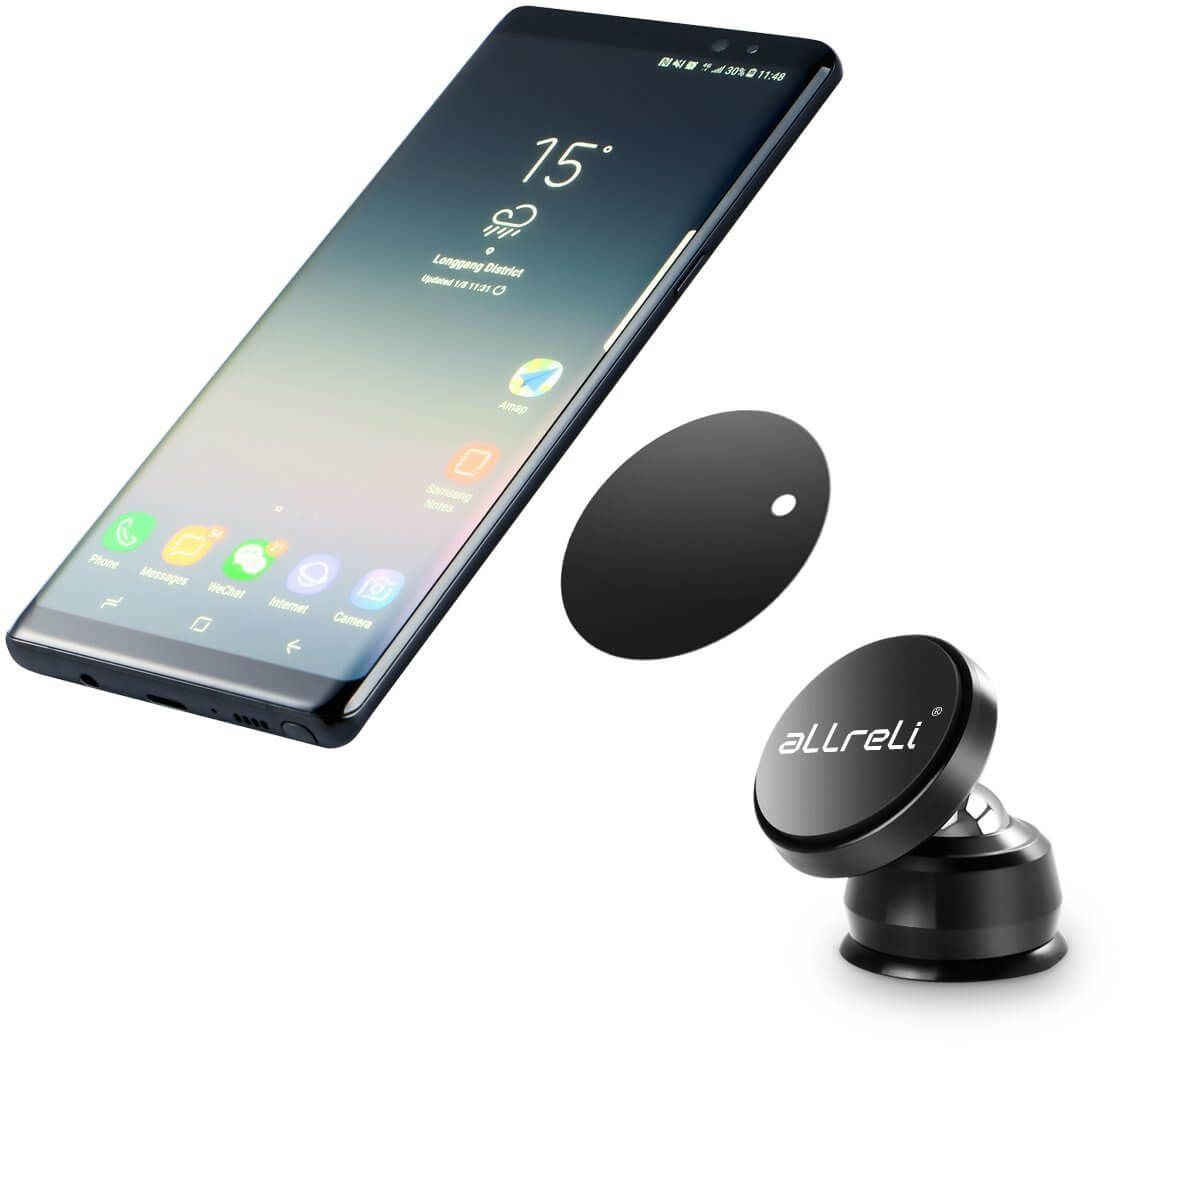 Free Amazon Gift Card Plus Magnetic Car Phone Holder Usa And Europe